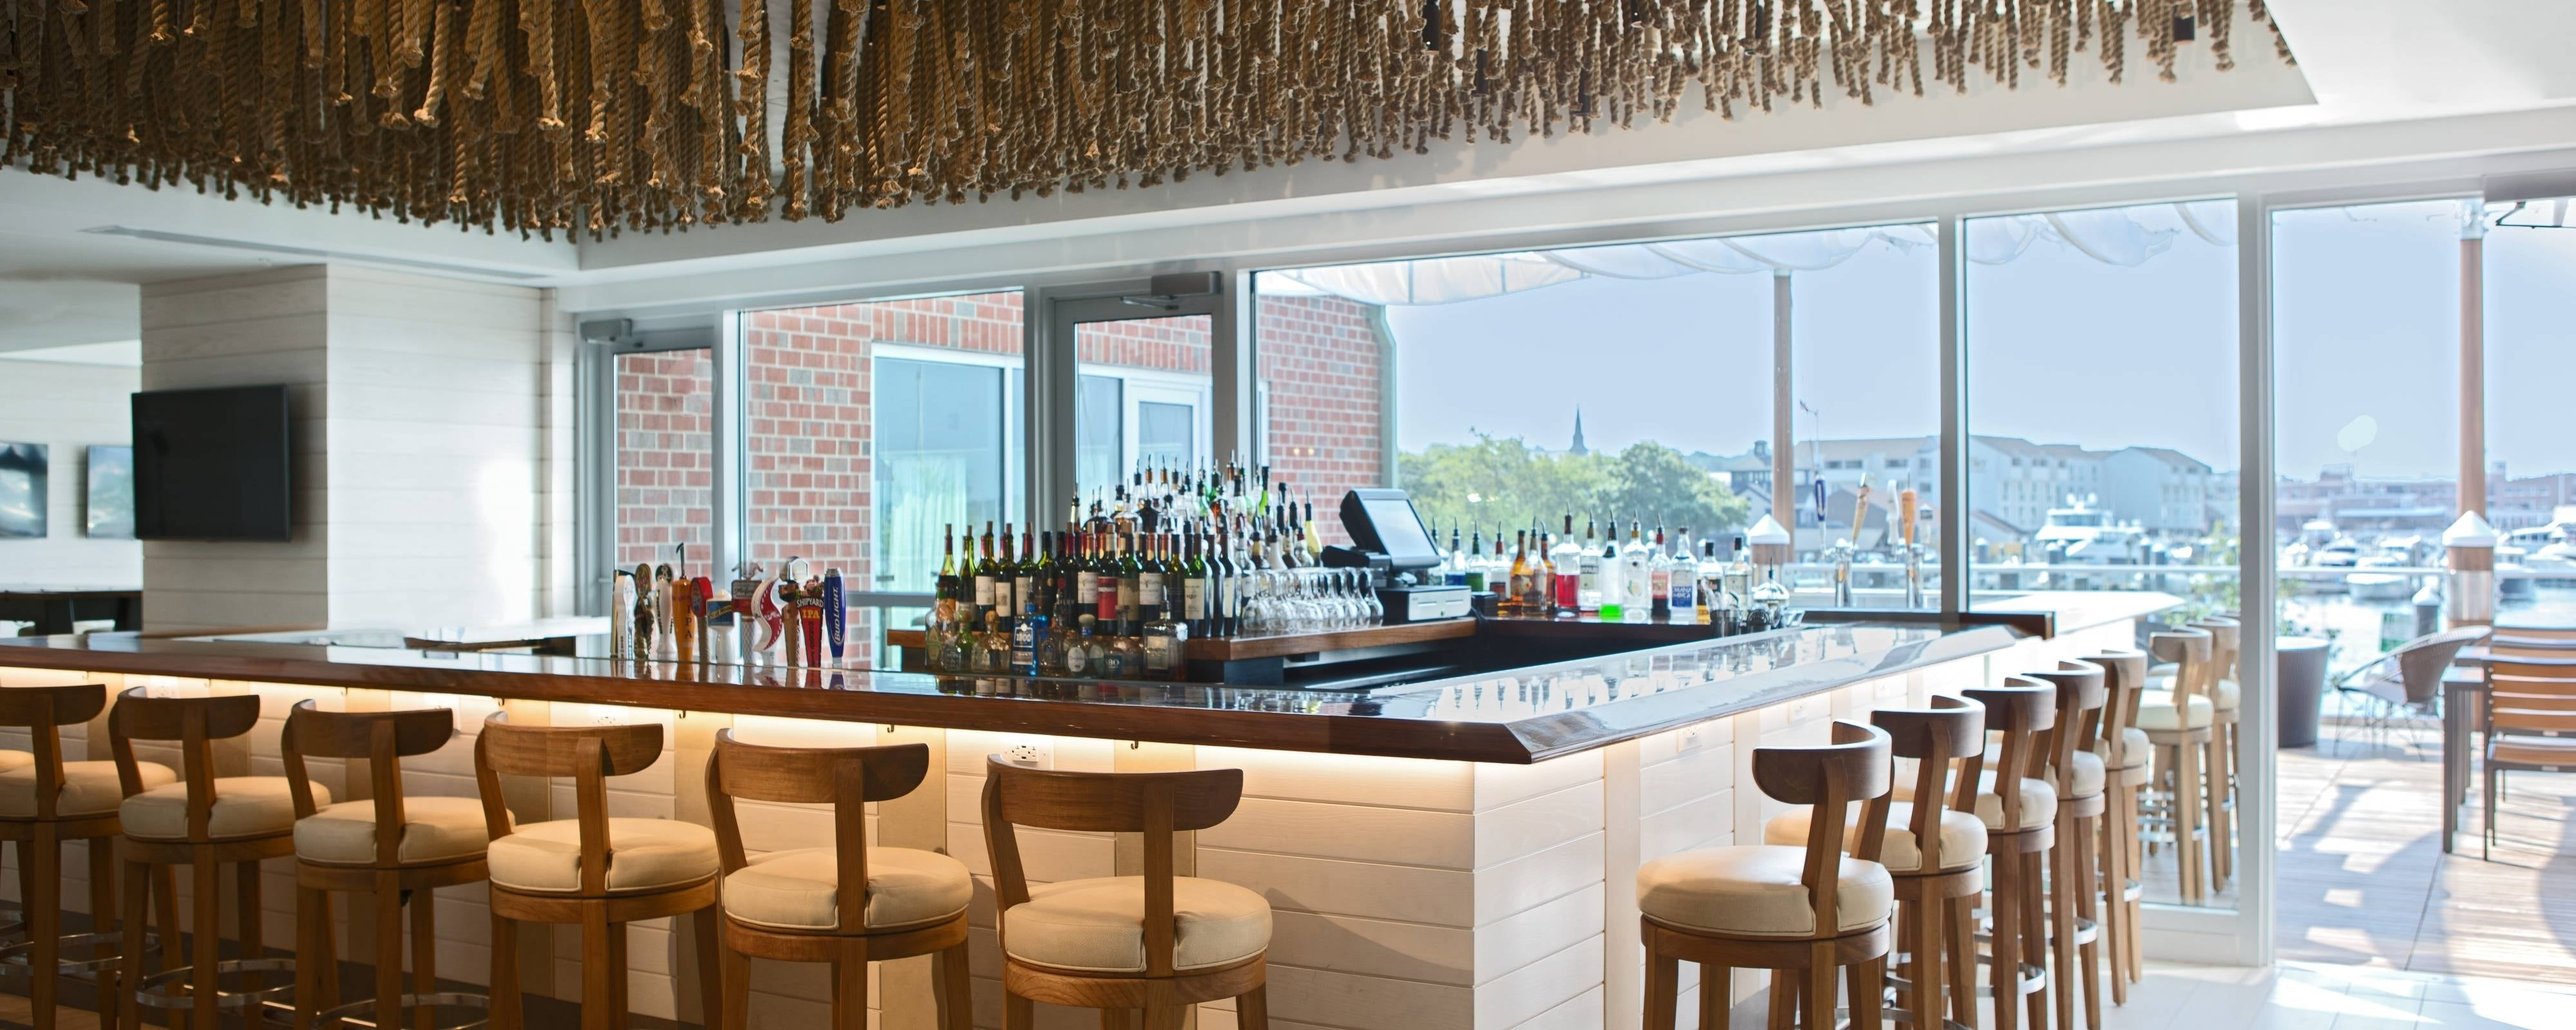 Waterfront Hotel Restaurants in Newport, RI | Newport Marriott